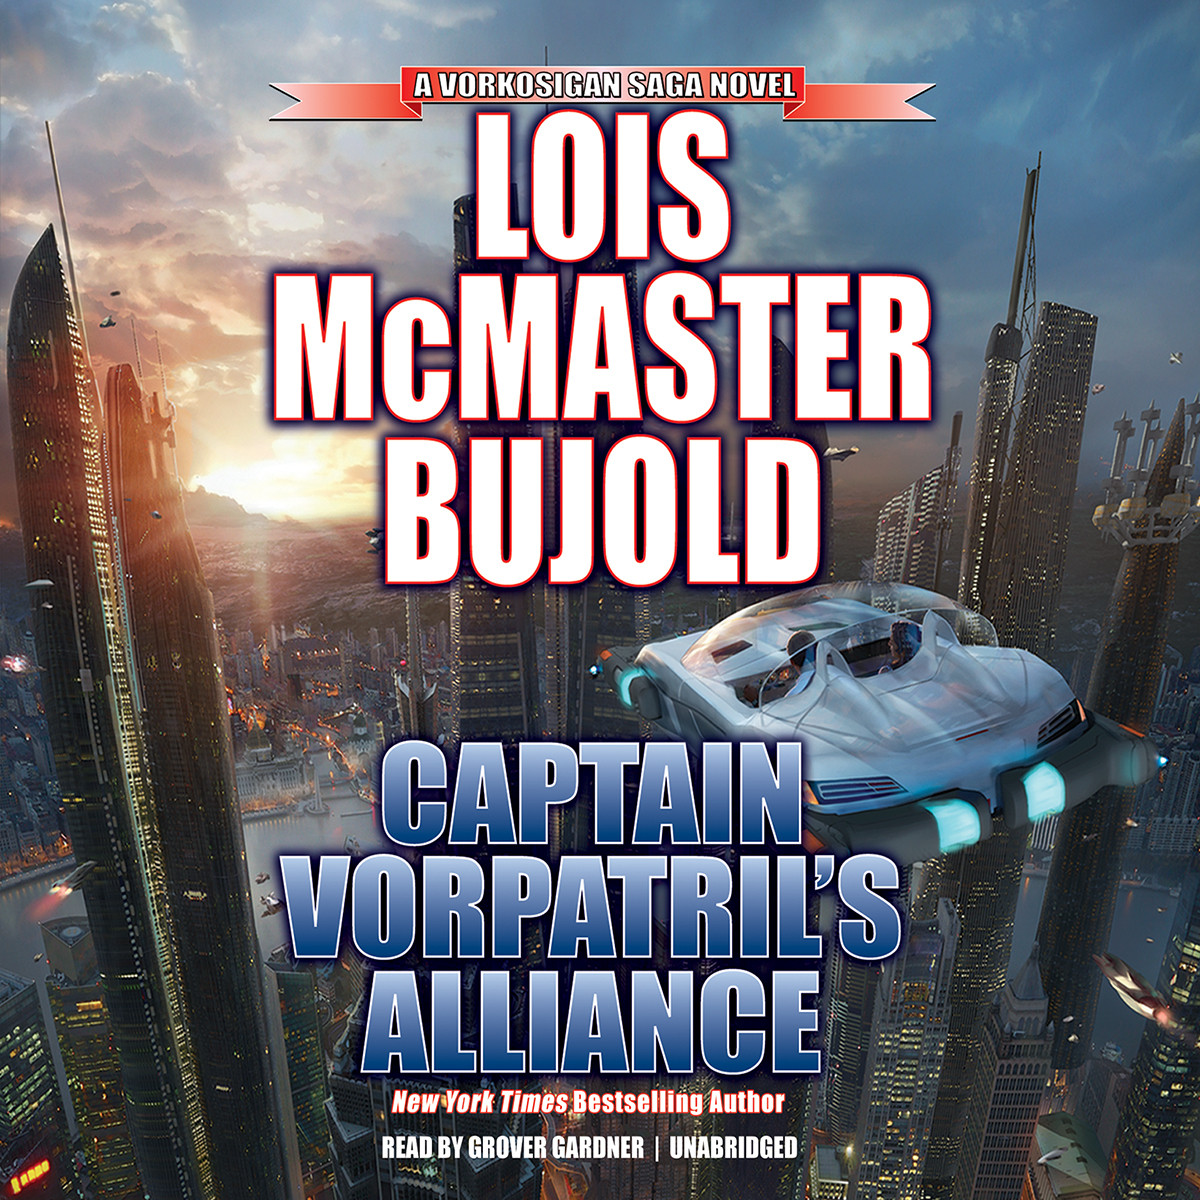 Printable Captain Vorpatril's Alliance Audiobook Cover Art